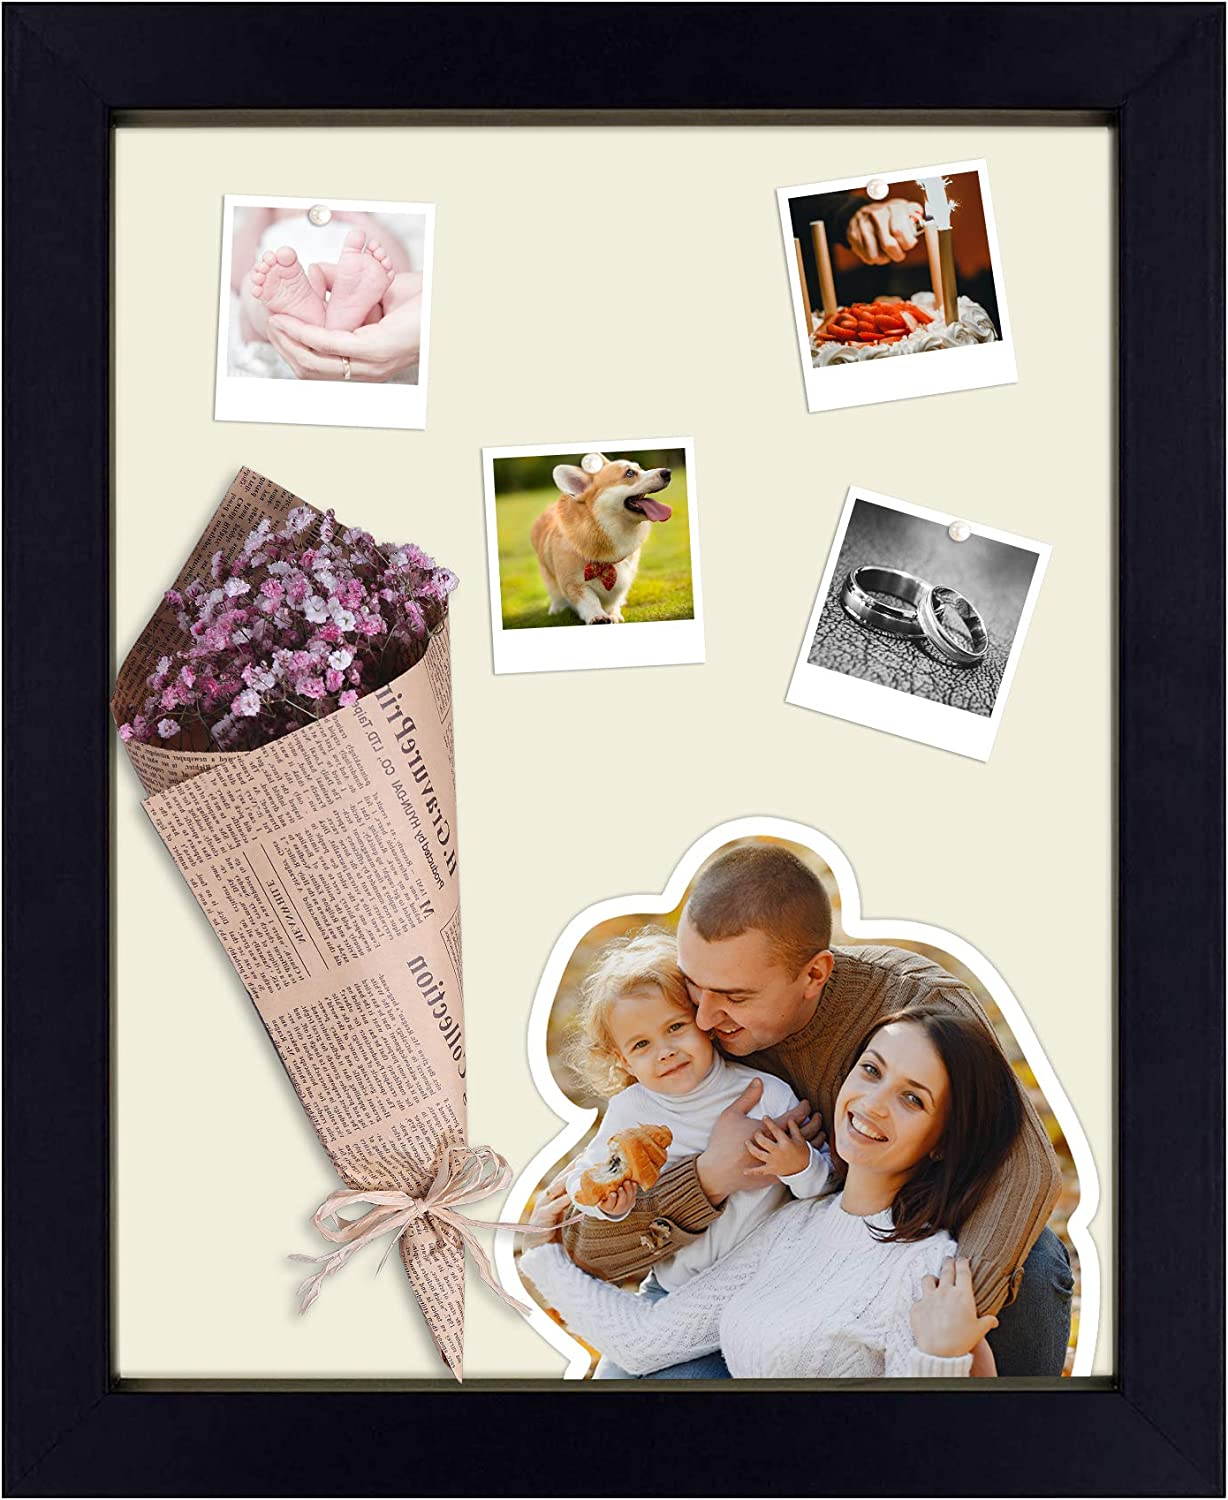 Decorations Black, 8.5x11 Frame, 2-Pack Swivel Tabs Frametory Includes Sawtooth Hanger Great for Engagements Projects Shadow Box Frame Includes Moveable Separator for Gallery Wall Display